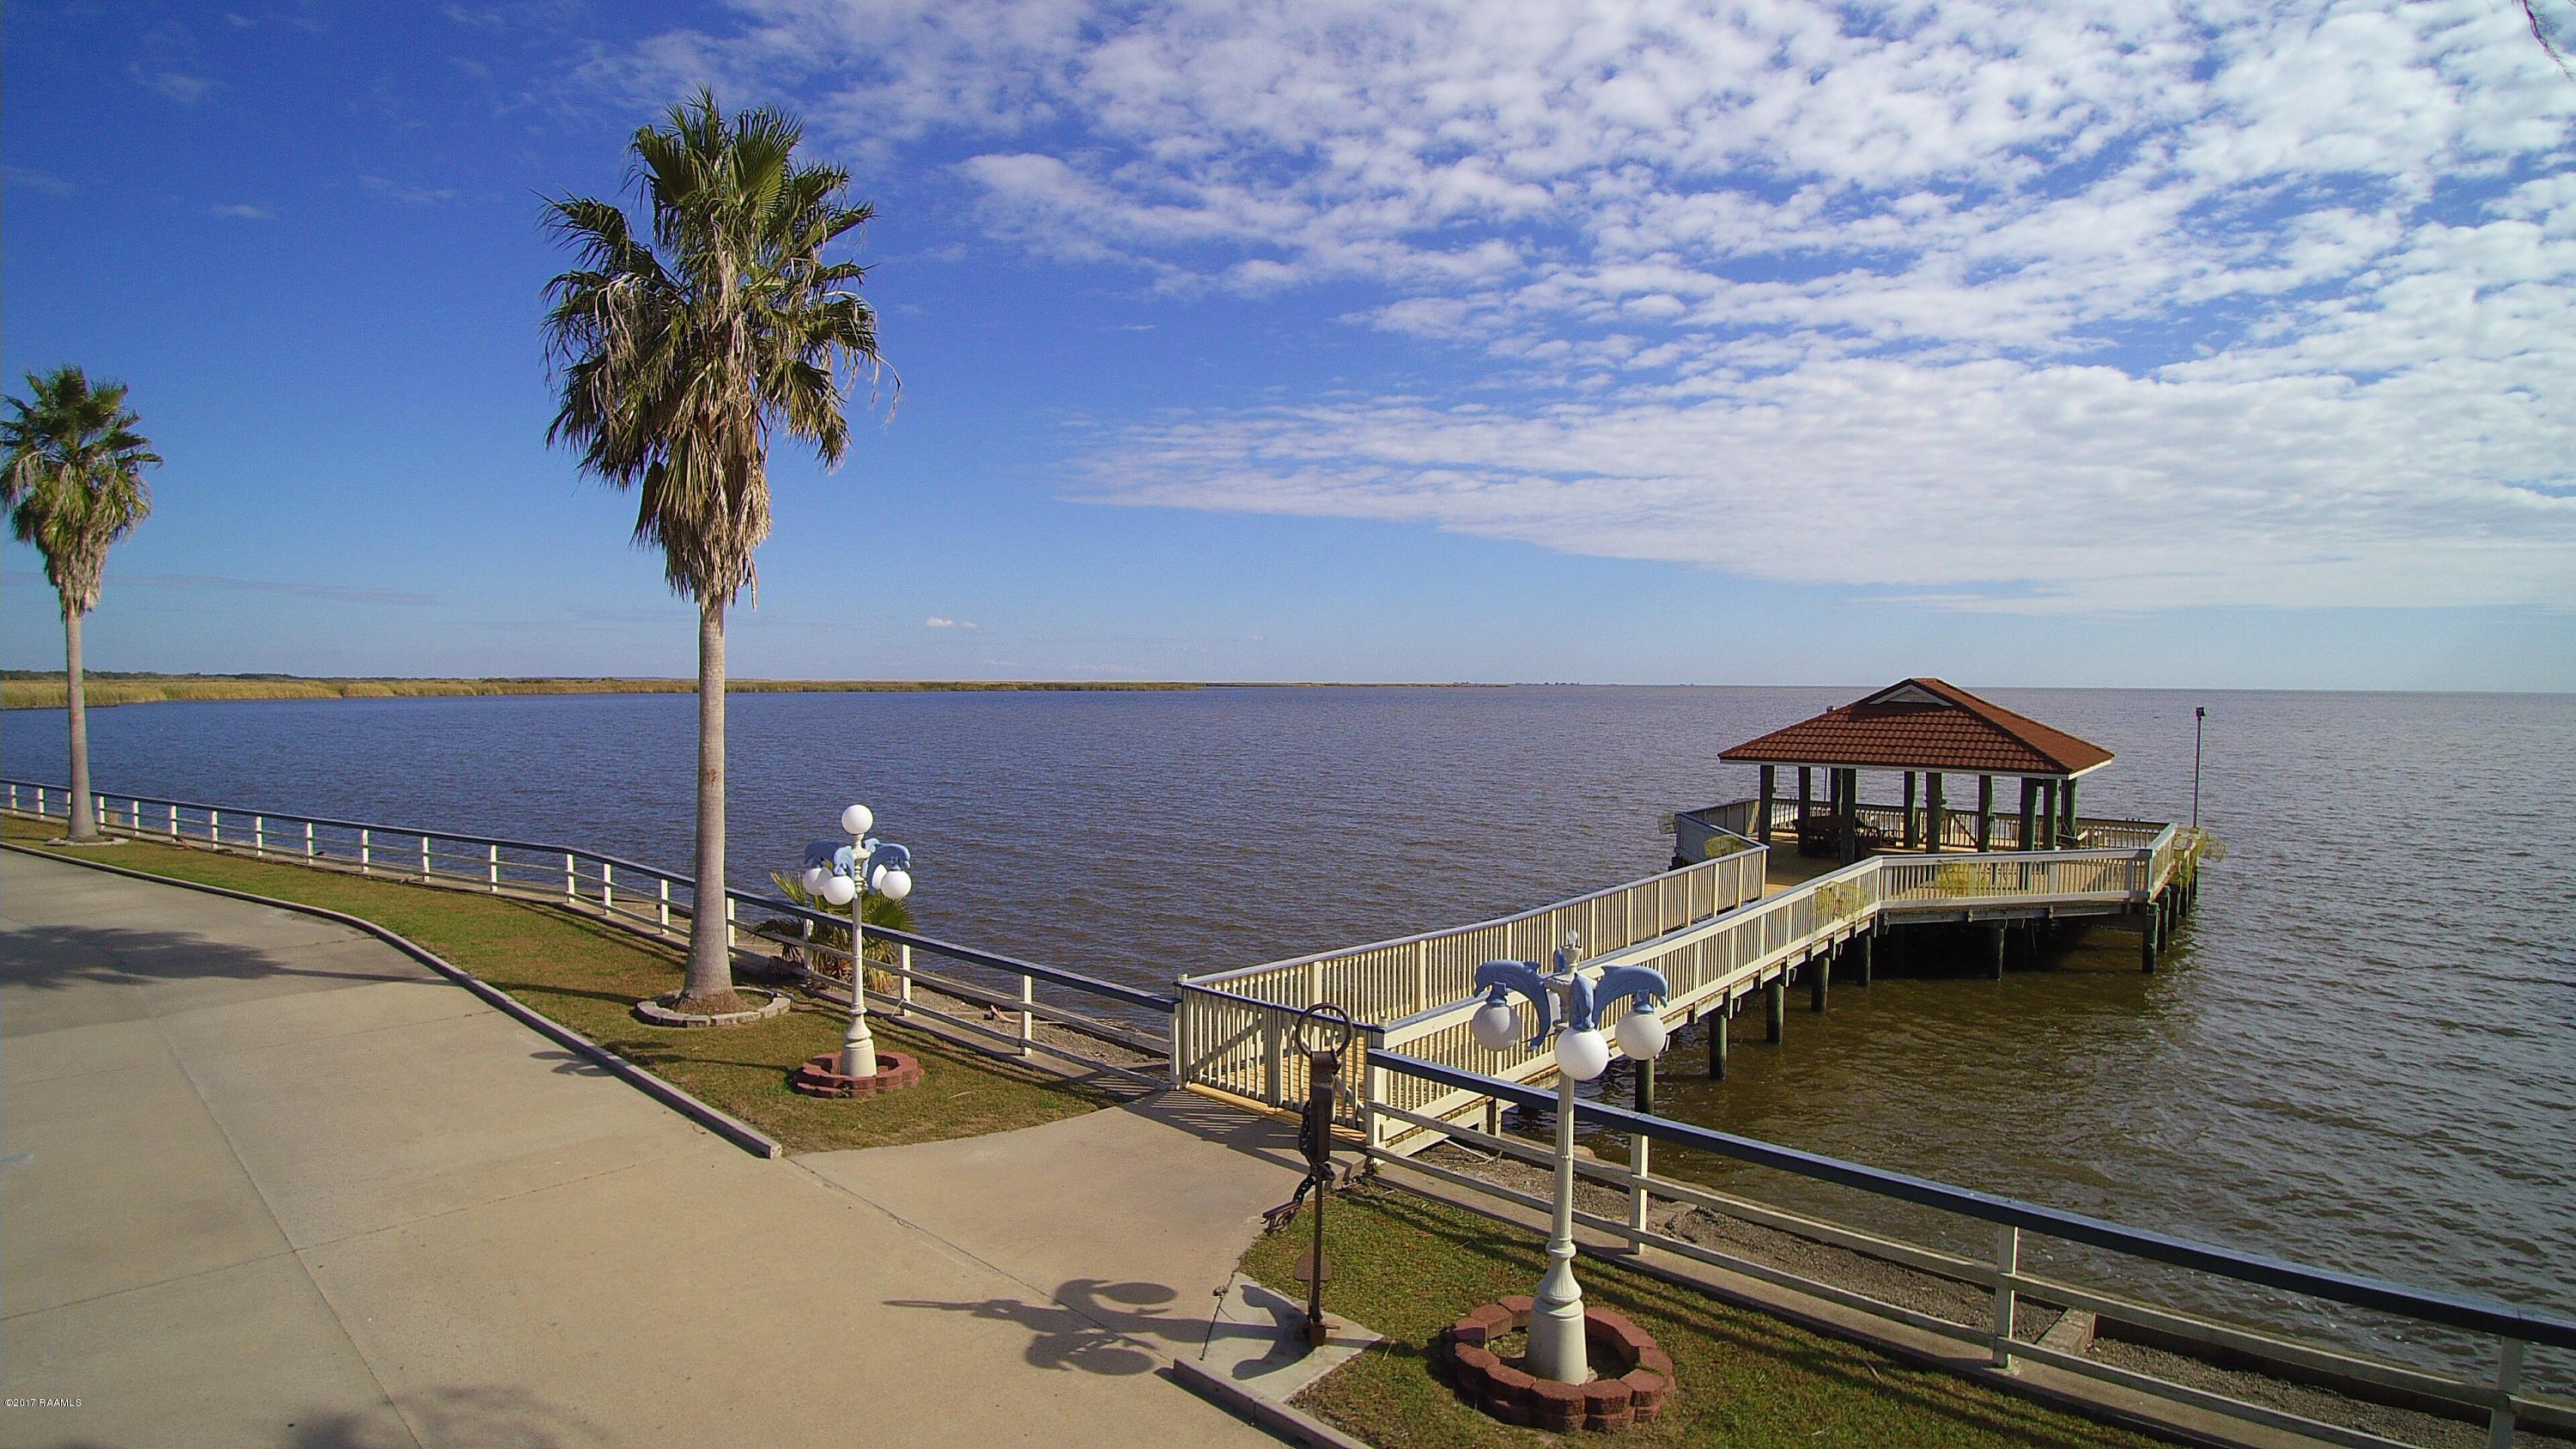 442 Bayview Drive, Cypremort Point, LA 70538 Photo #2